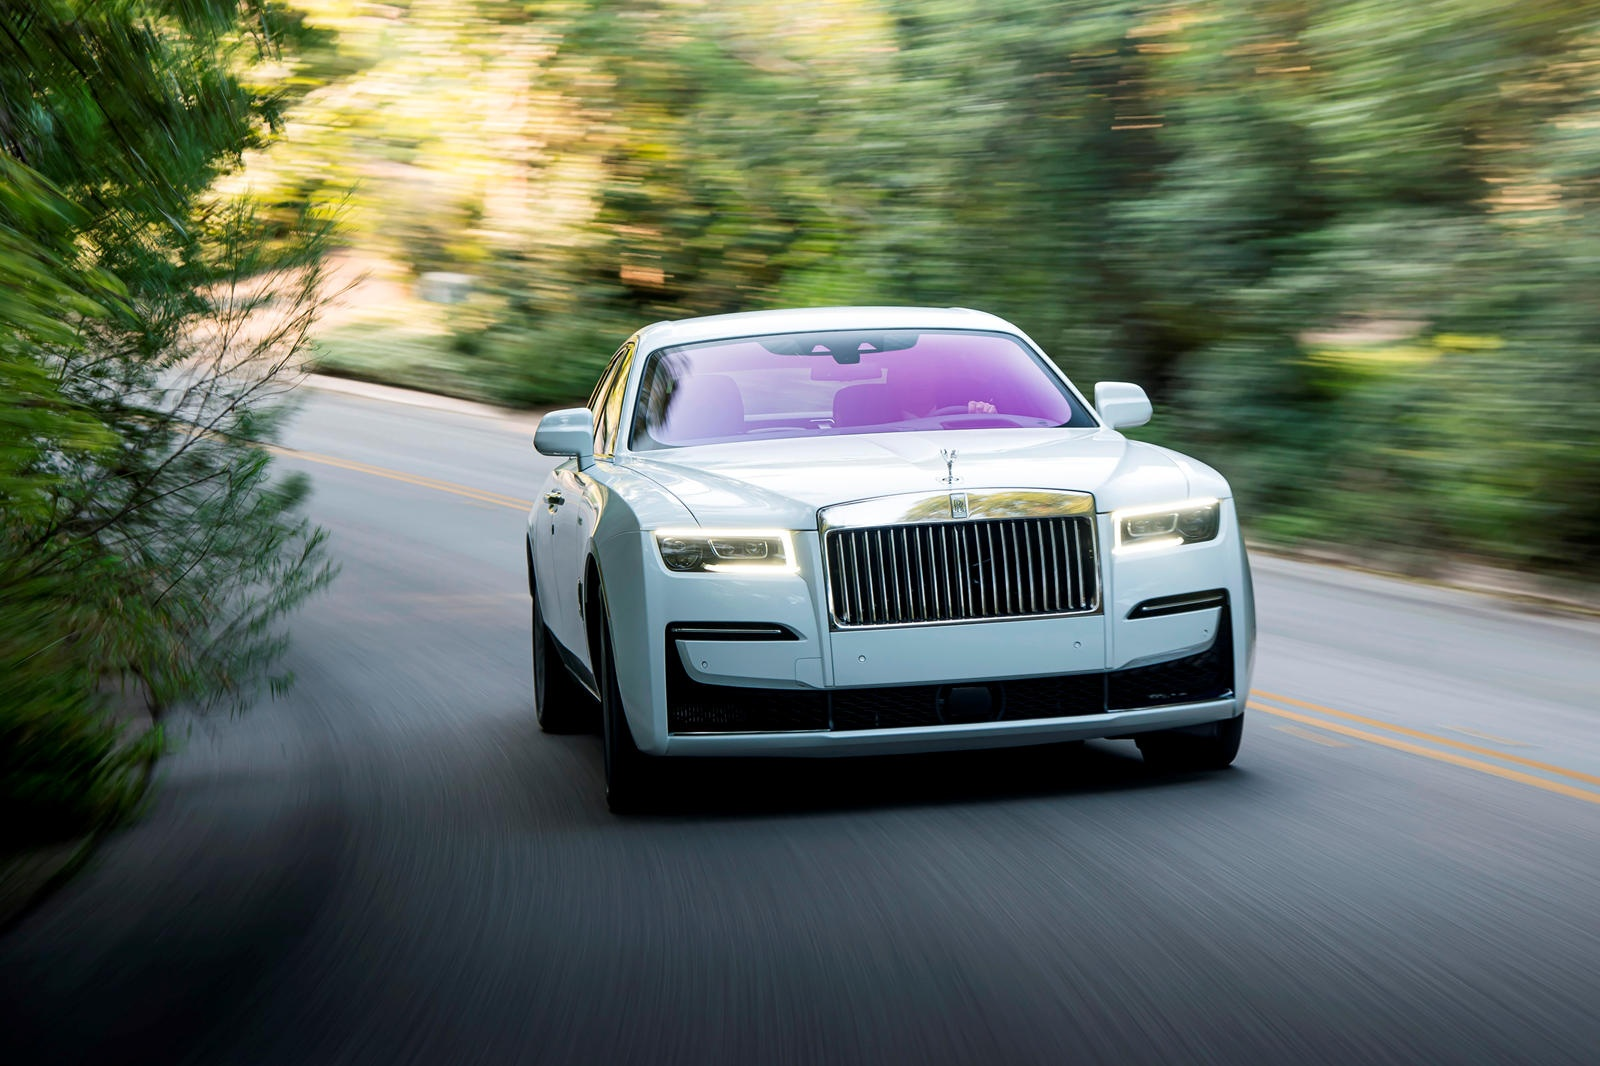 Danh gia Rolls-Royce Ghost 2021 anh 32